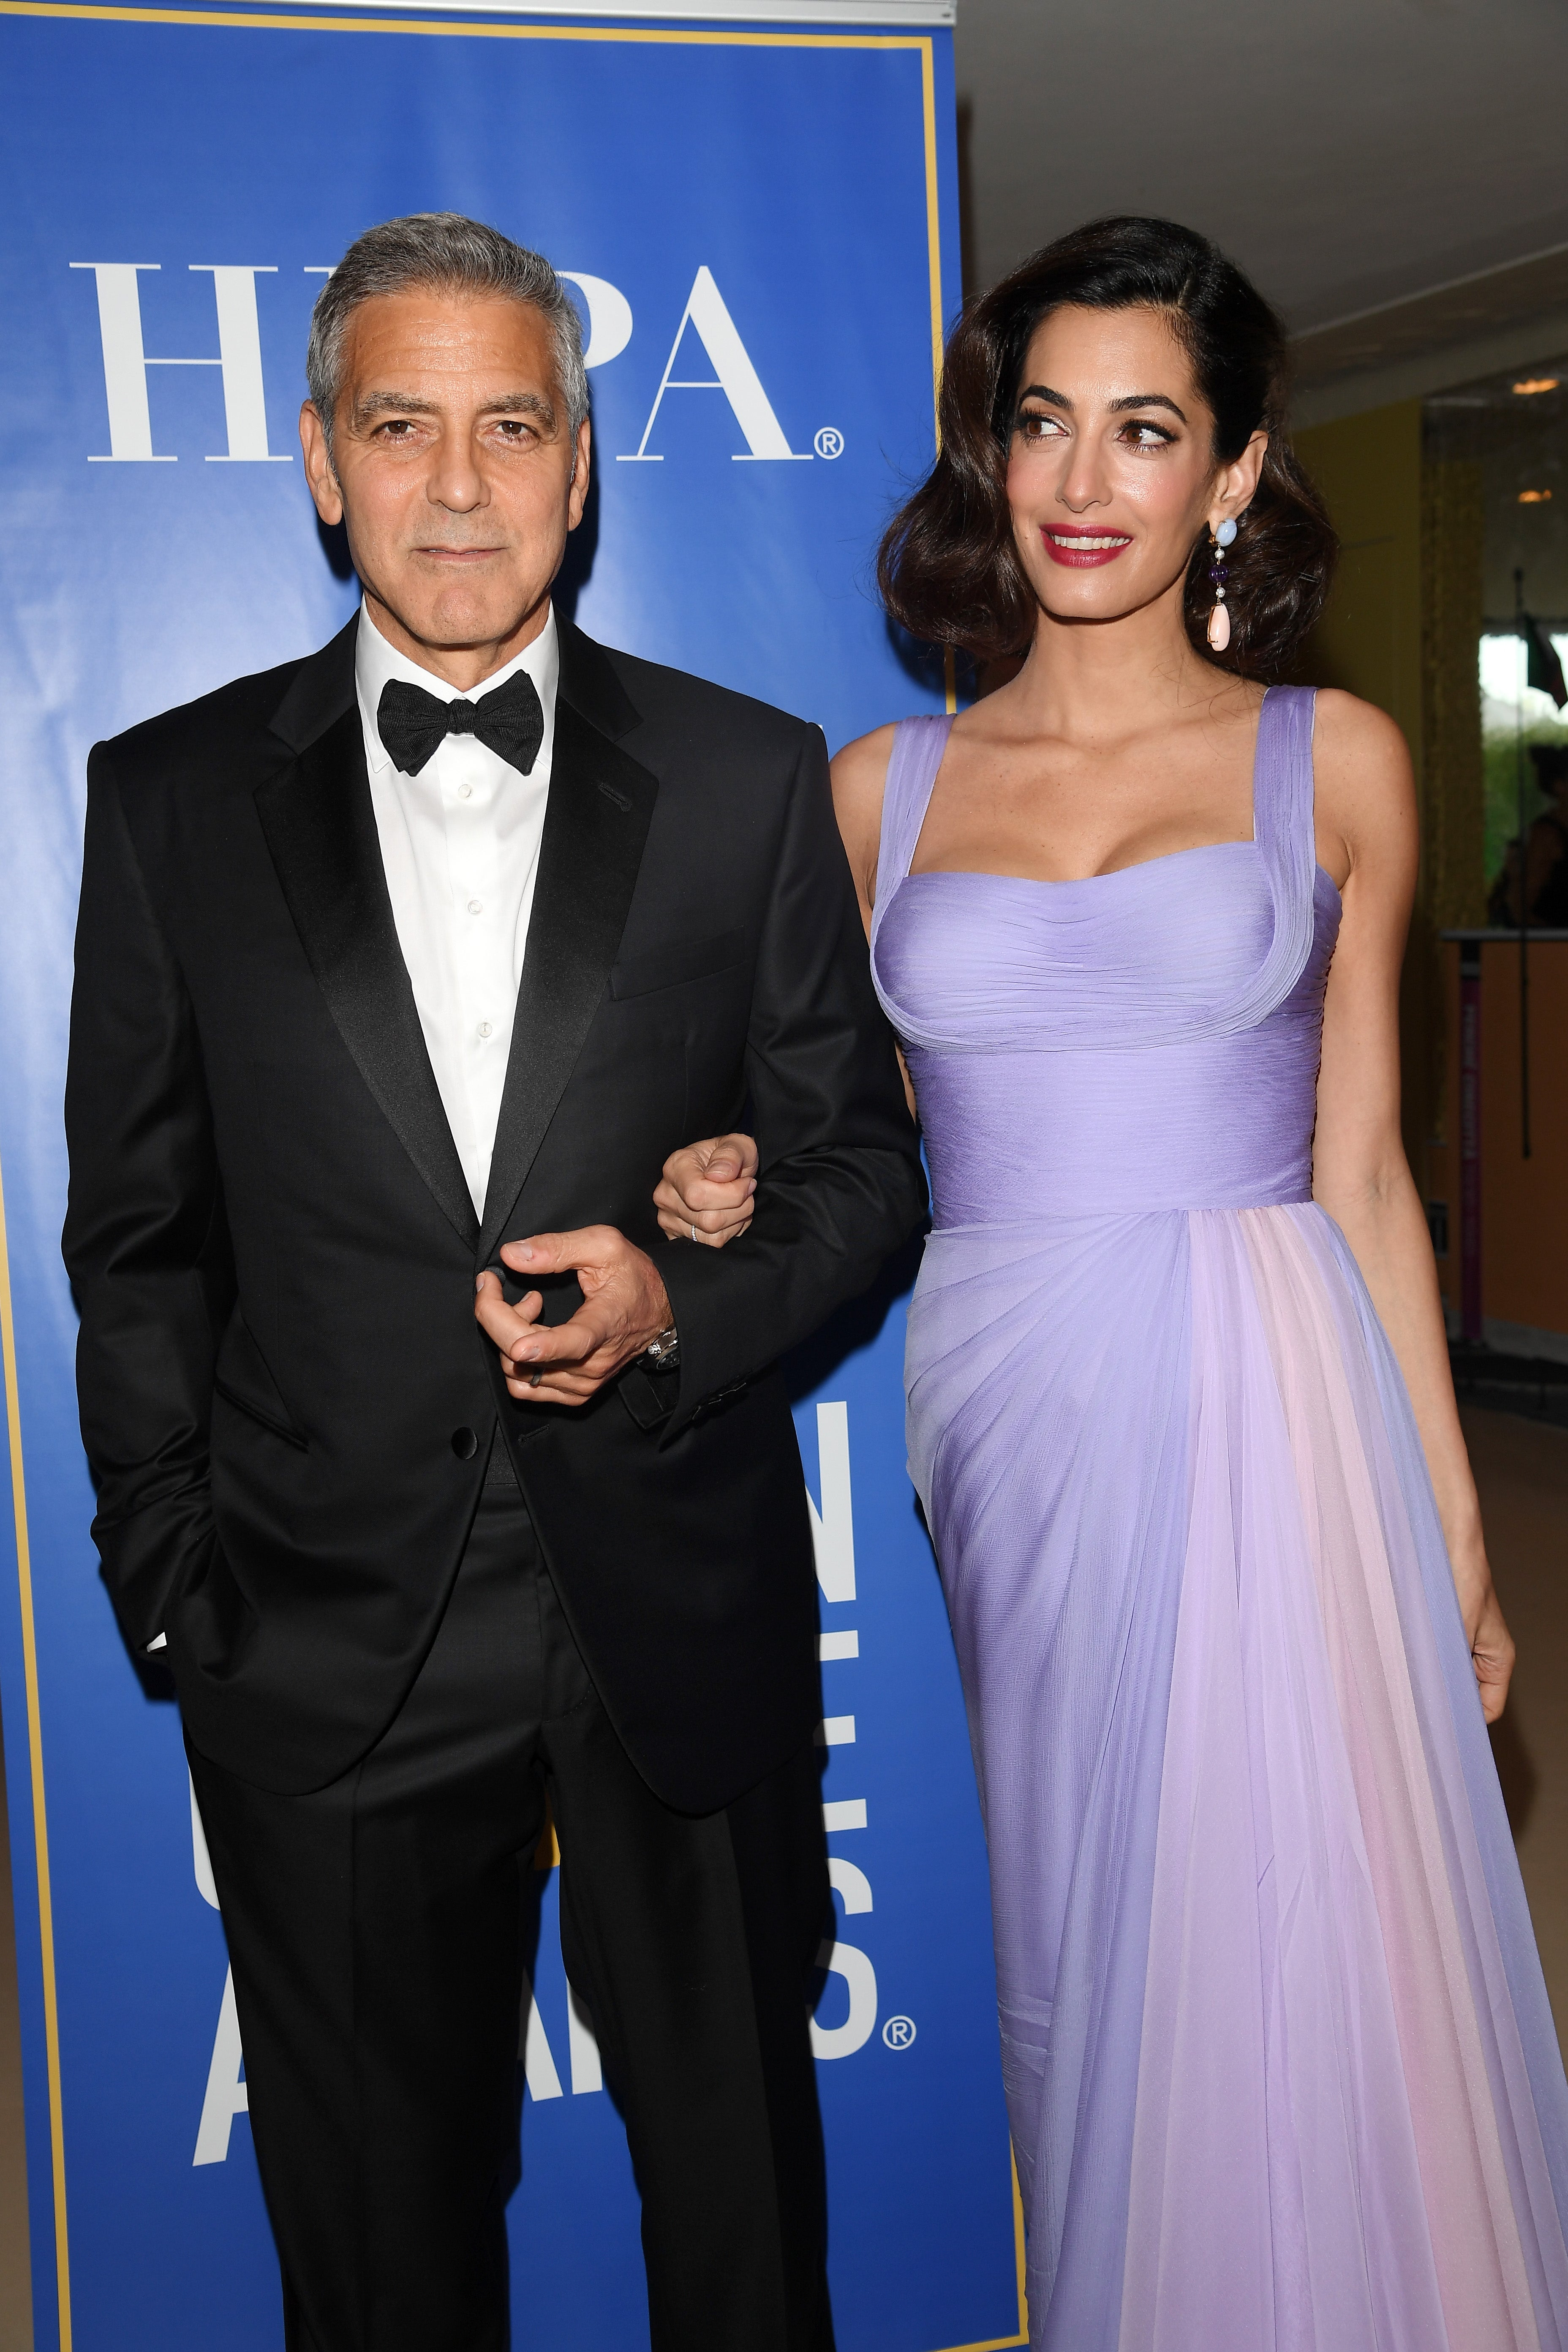 george_clooney_amal_clooney_GettyImages-841882380